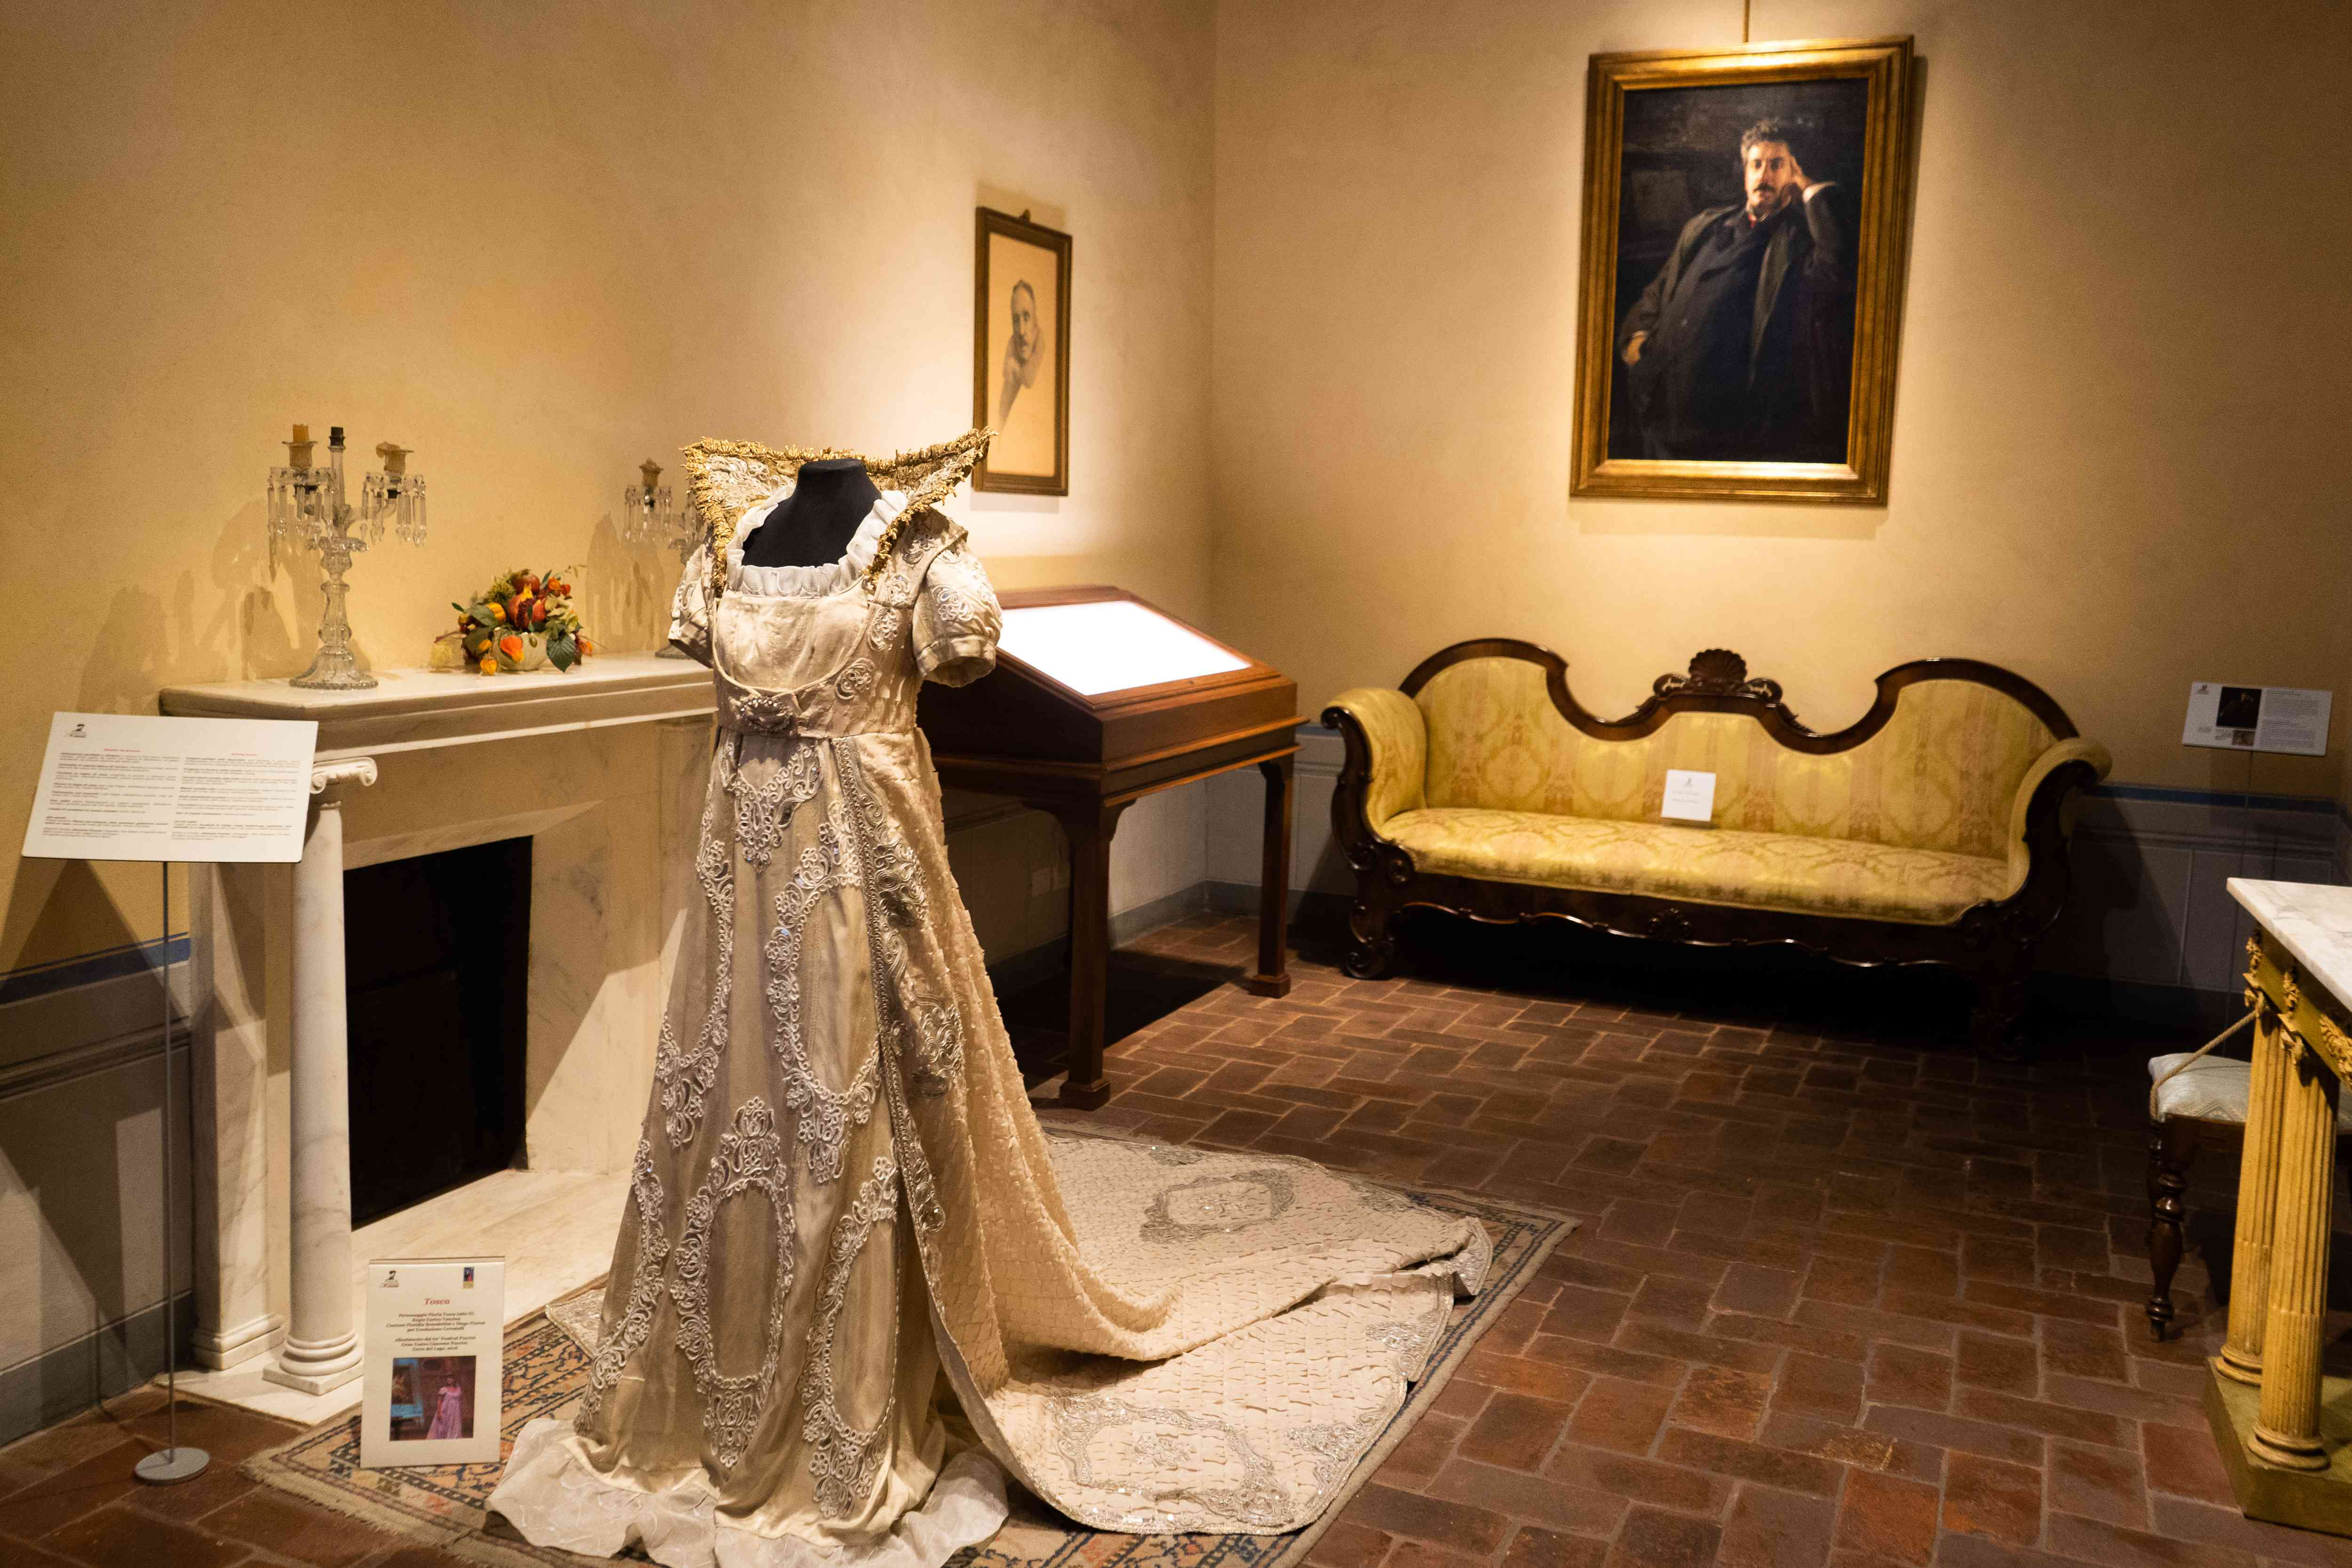 Exhibition room in the Puccini House Museum